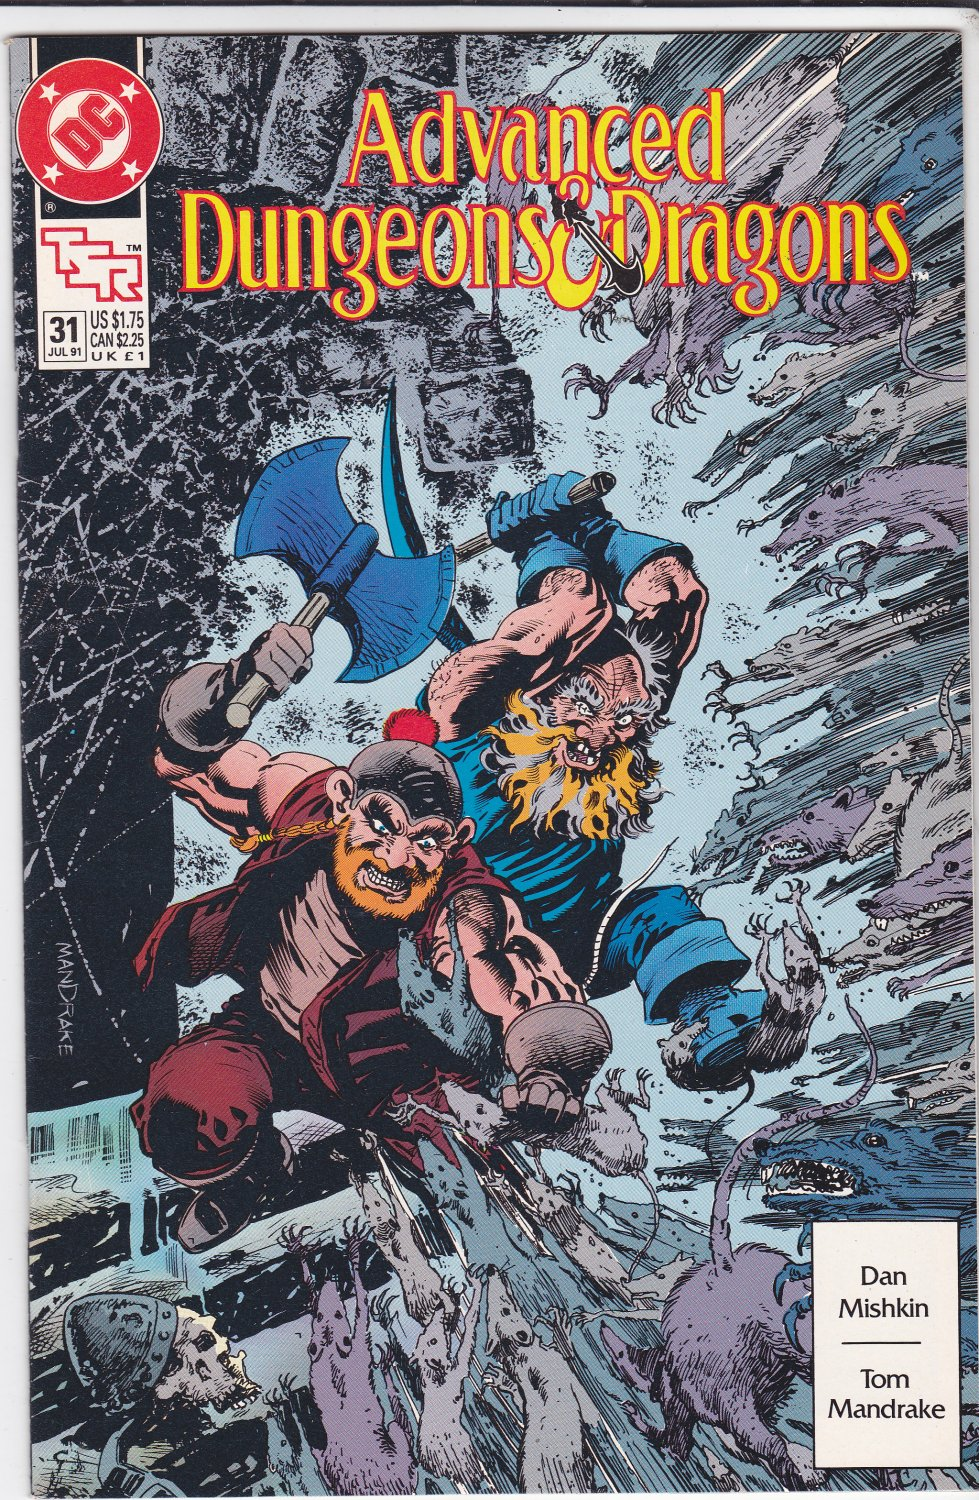 Advanced Dungeons & Dragons #31